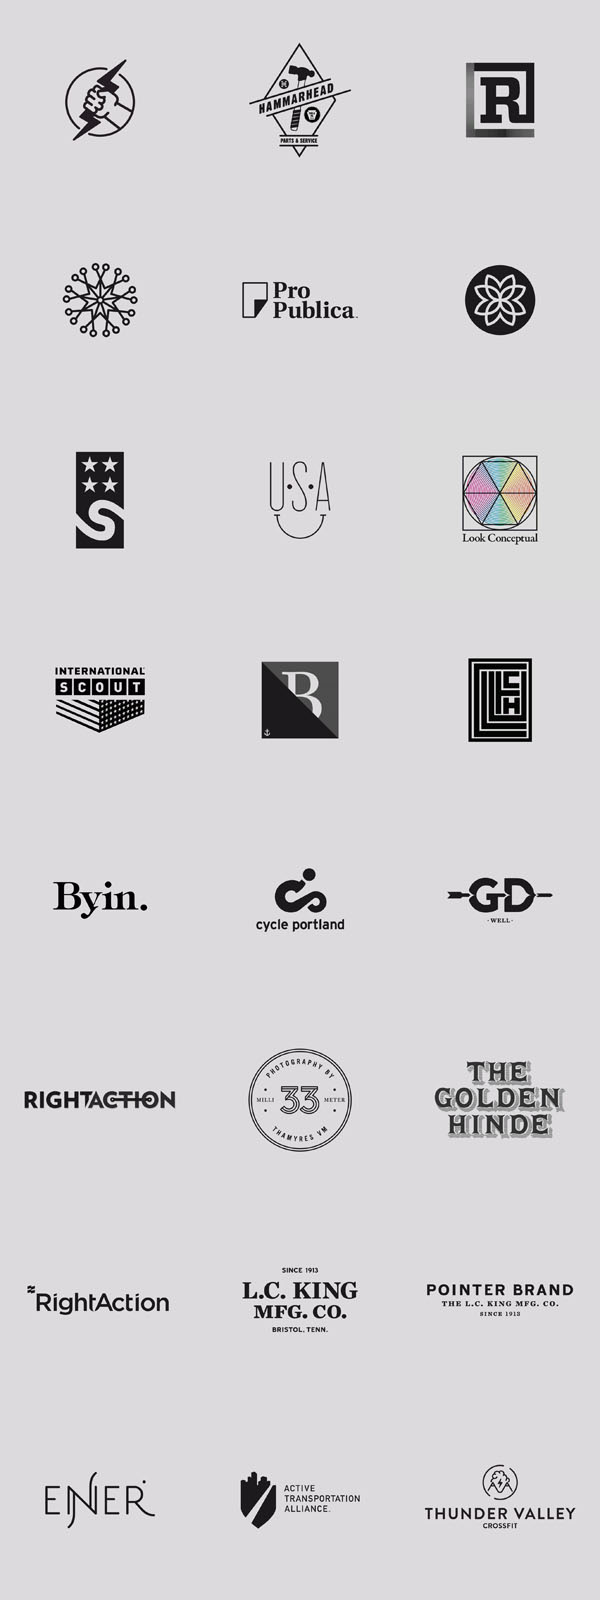 Logo Design Inspiration – Graphics by Daniel Blackman